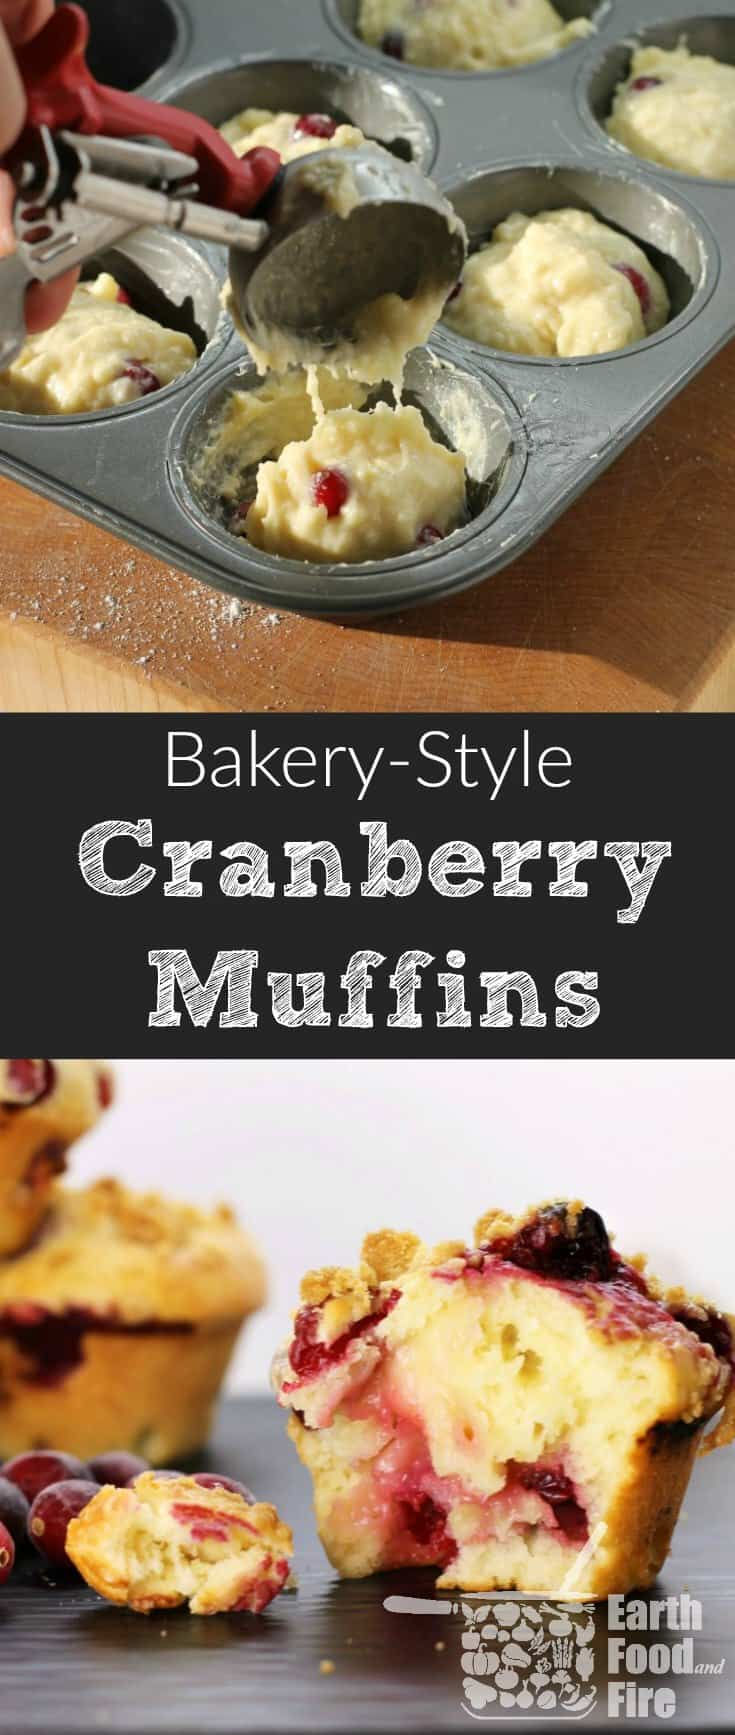 Bake these delicious bakery-style cranberry muffins at home! Fluffy, moist and full of fresh fruit, these muffins are a hit in any family!